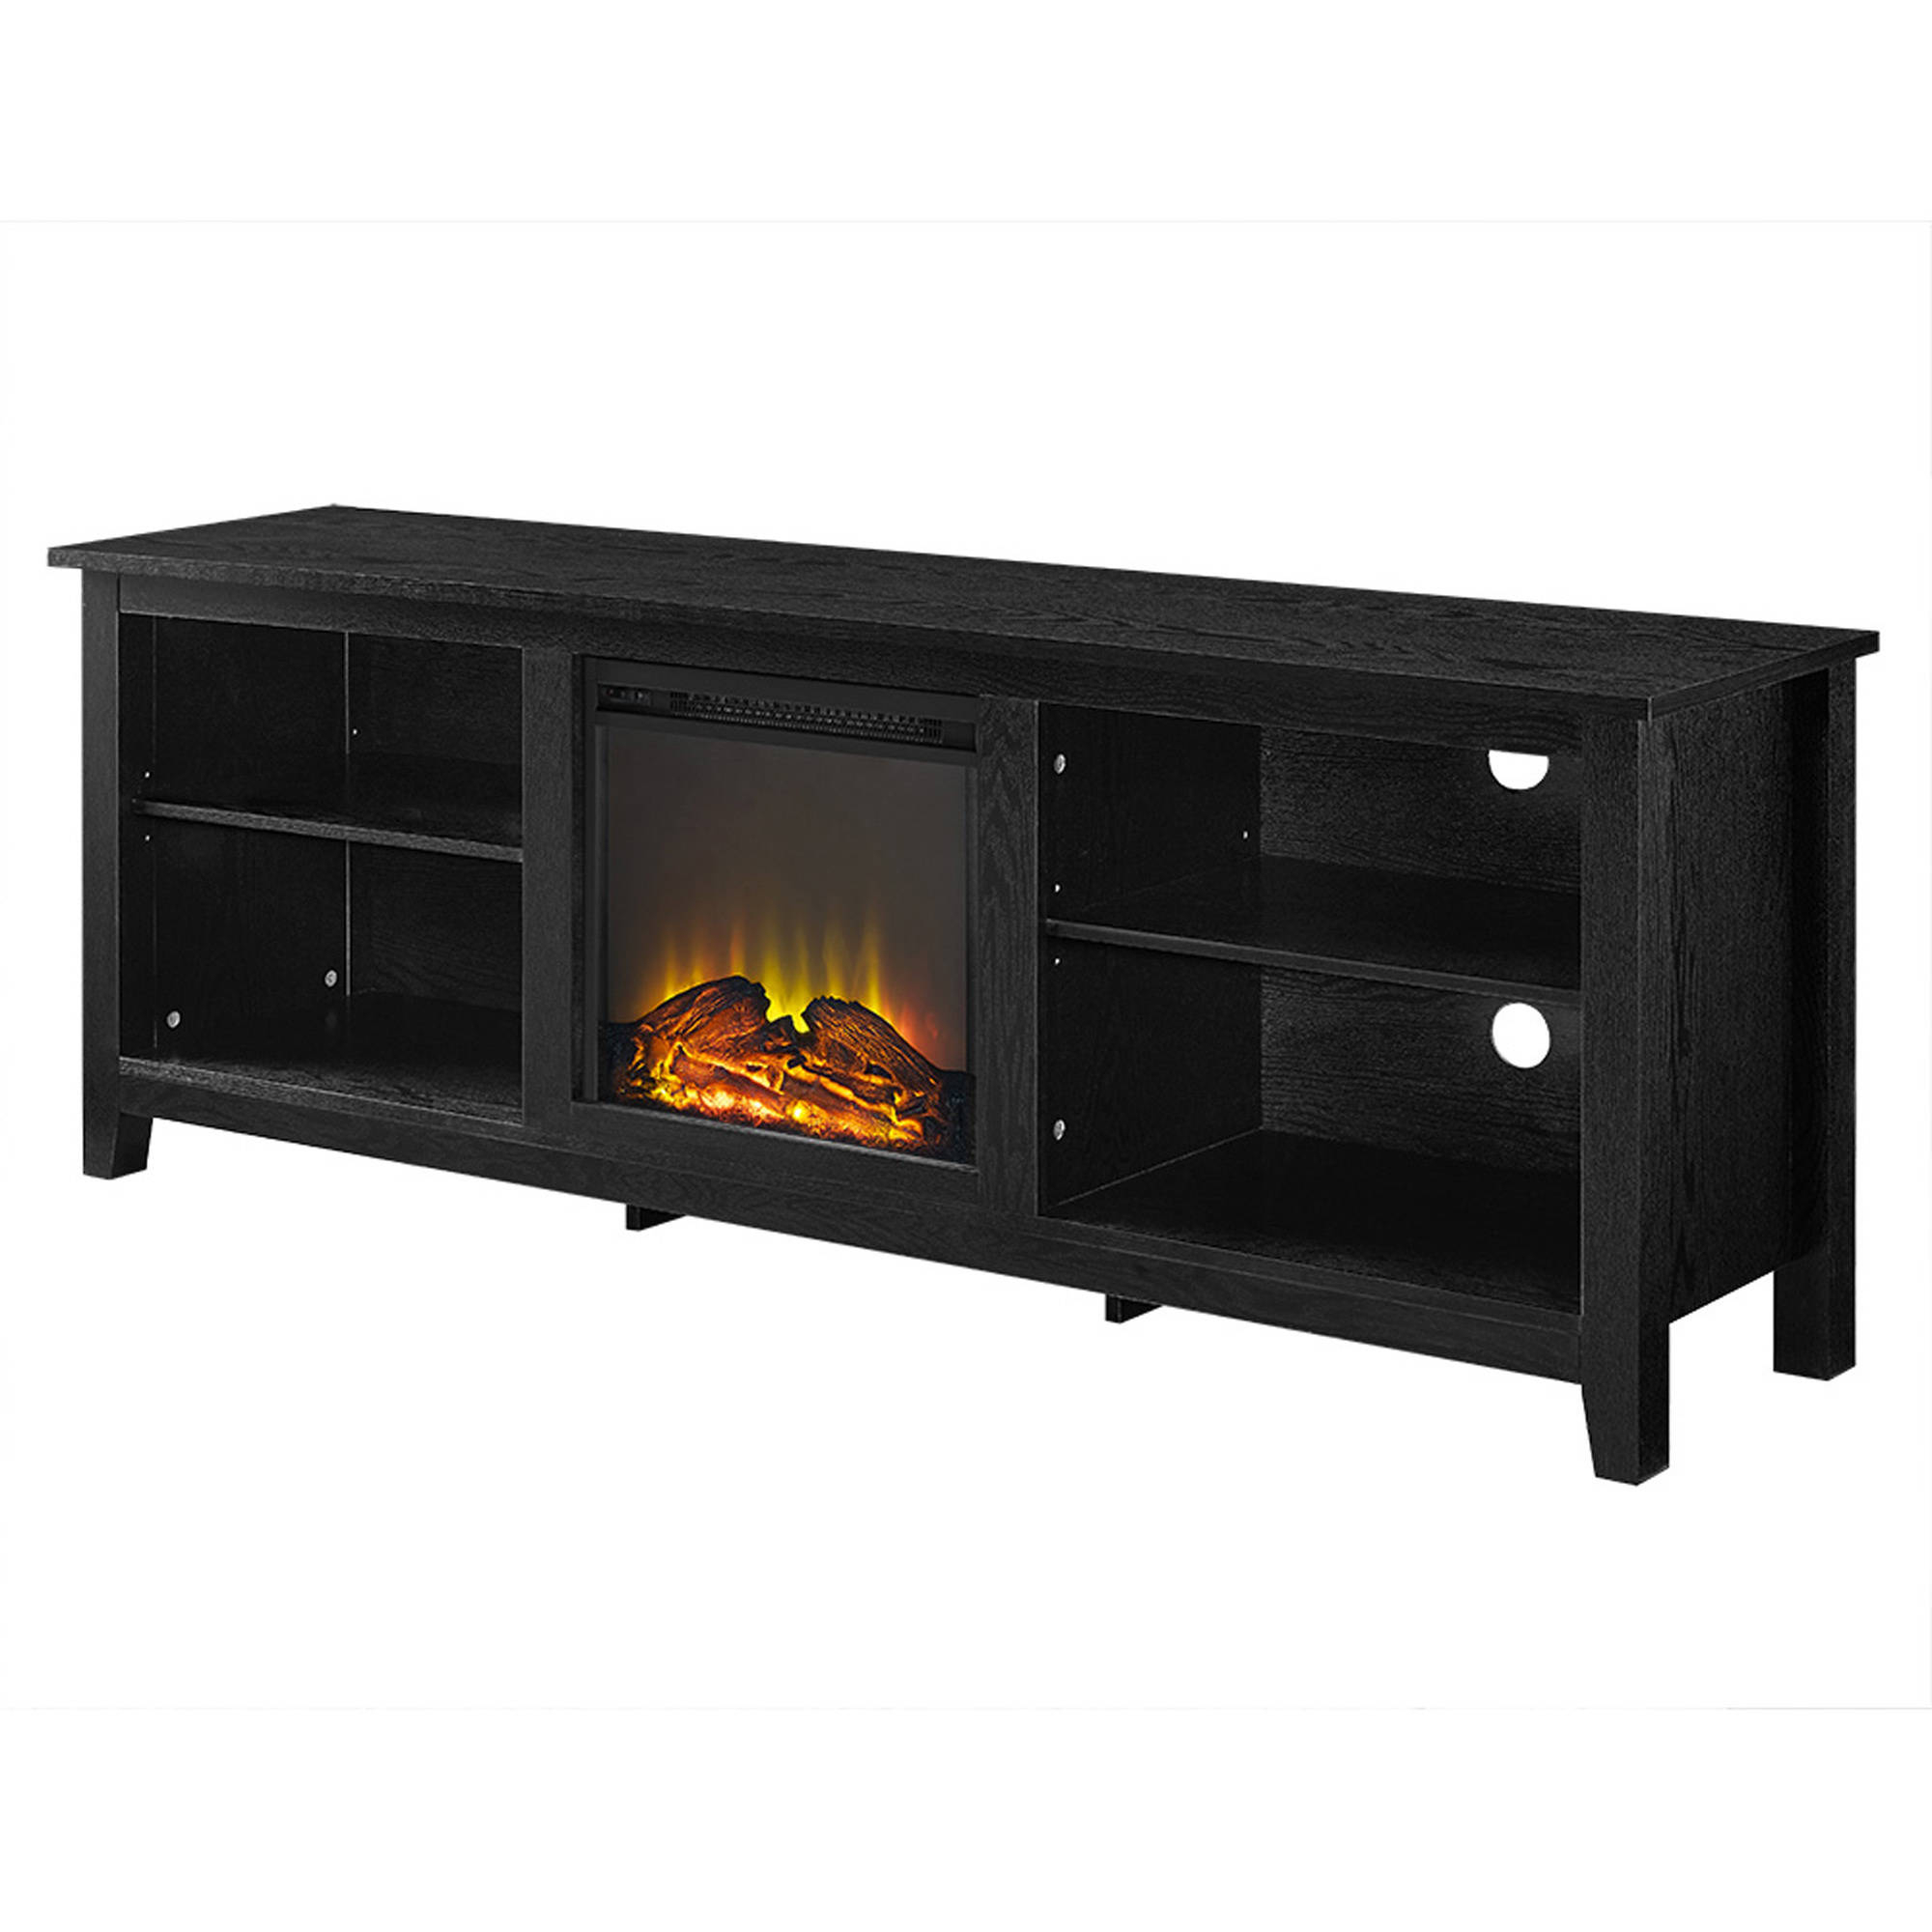 "Fashionable We Furniture Az70fp18bl 70"" Wood Fireplace Tv Stand Black (View 18 of 20)"